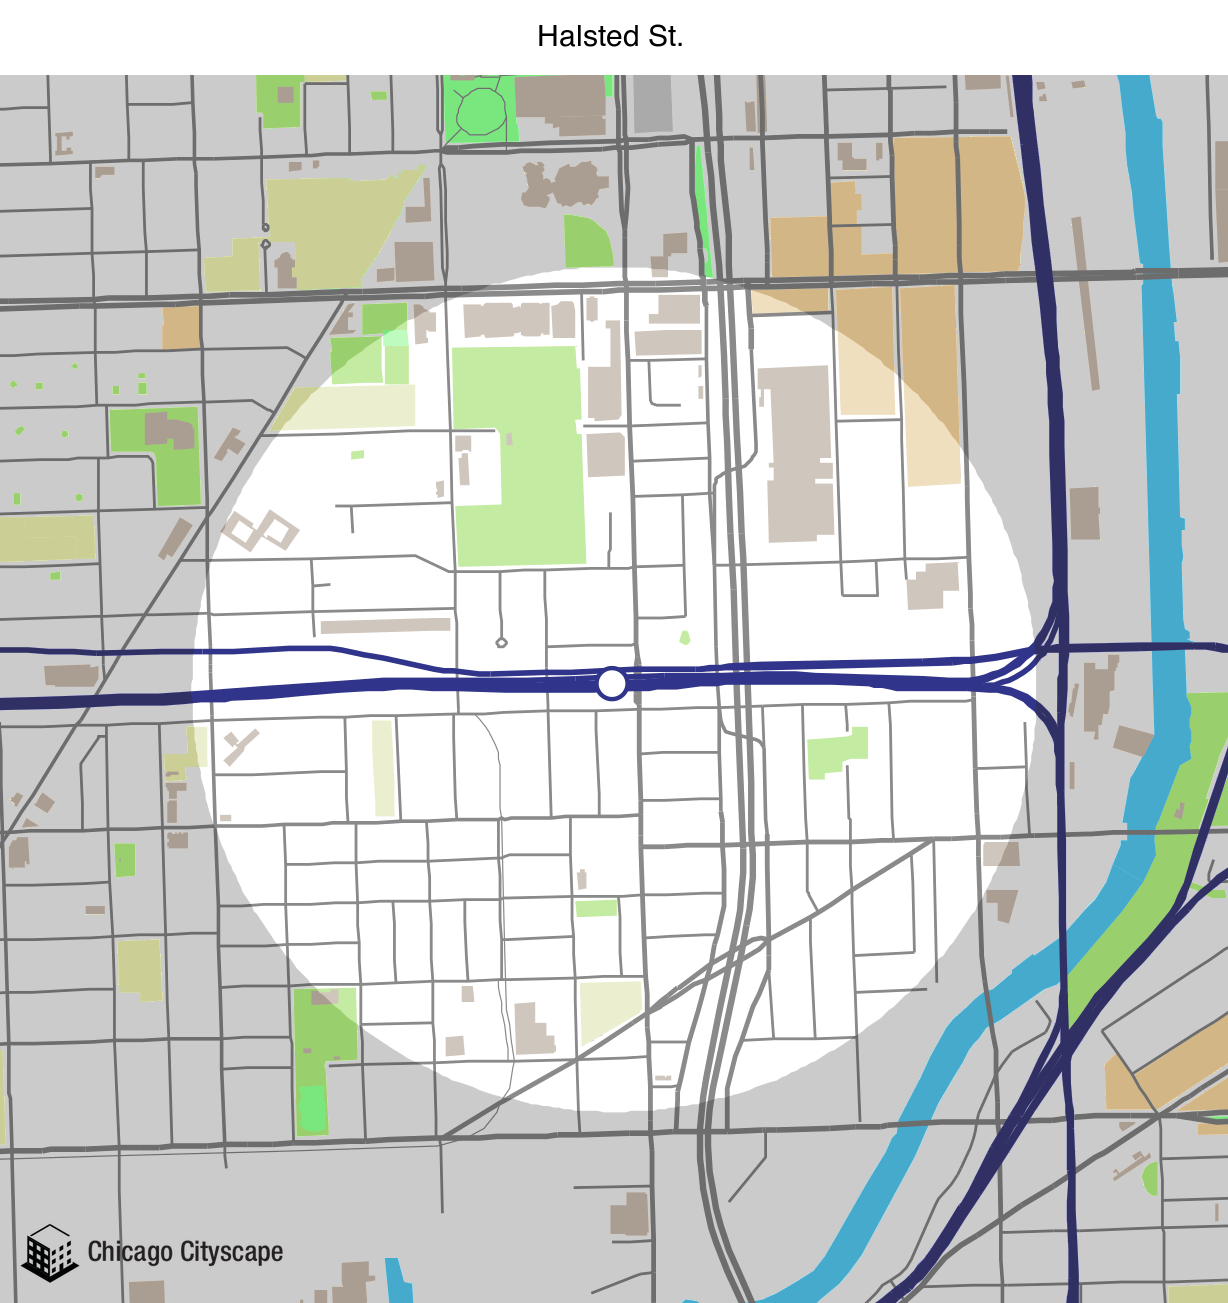 Chicago Map Streets.Chicago Cityscape Map Of Building Projects Properties And